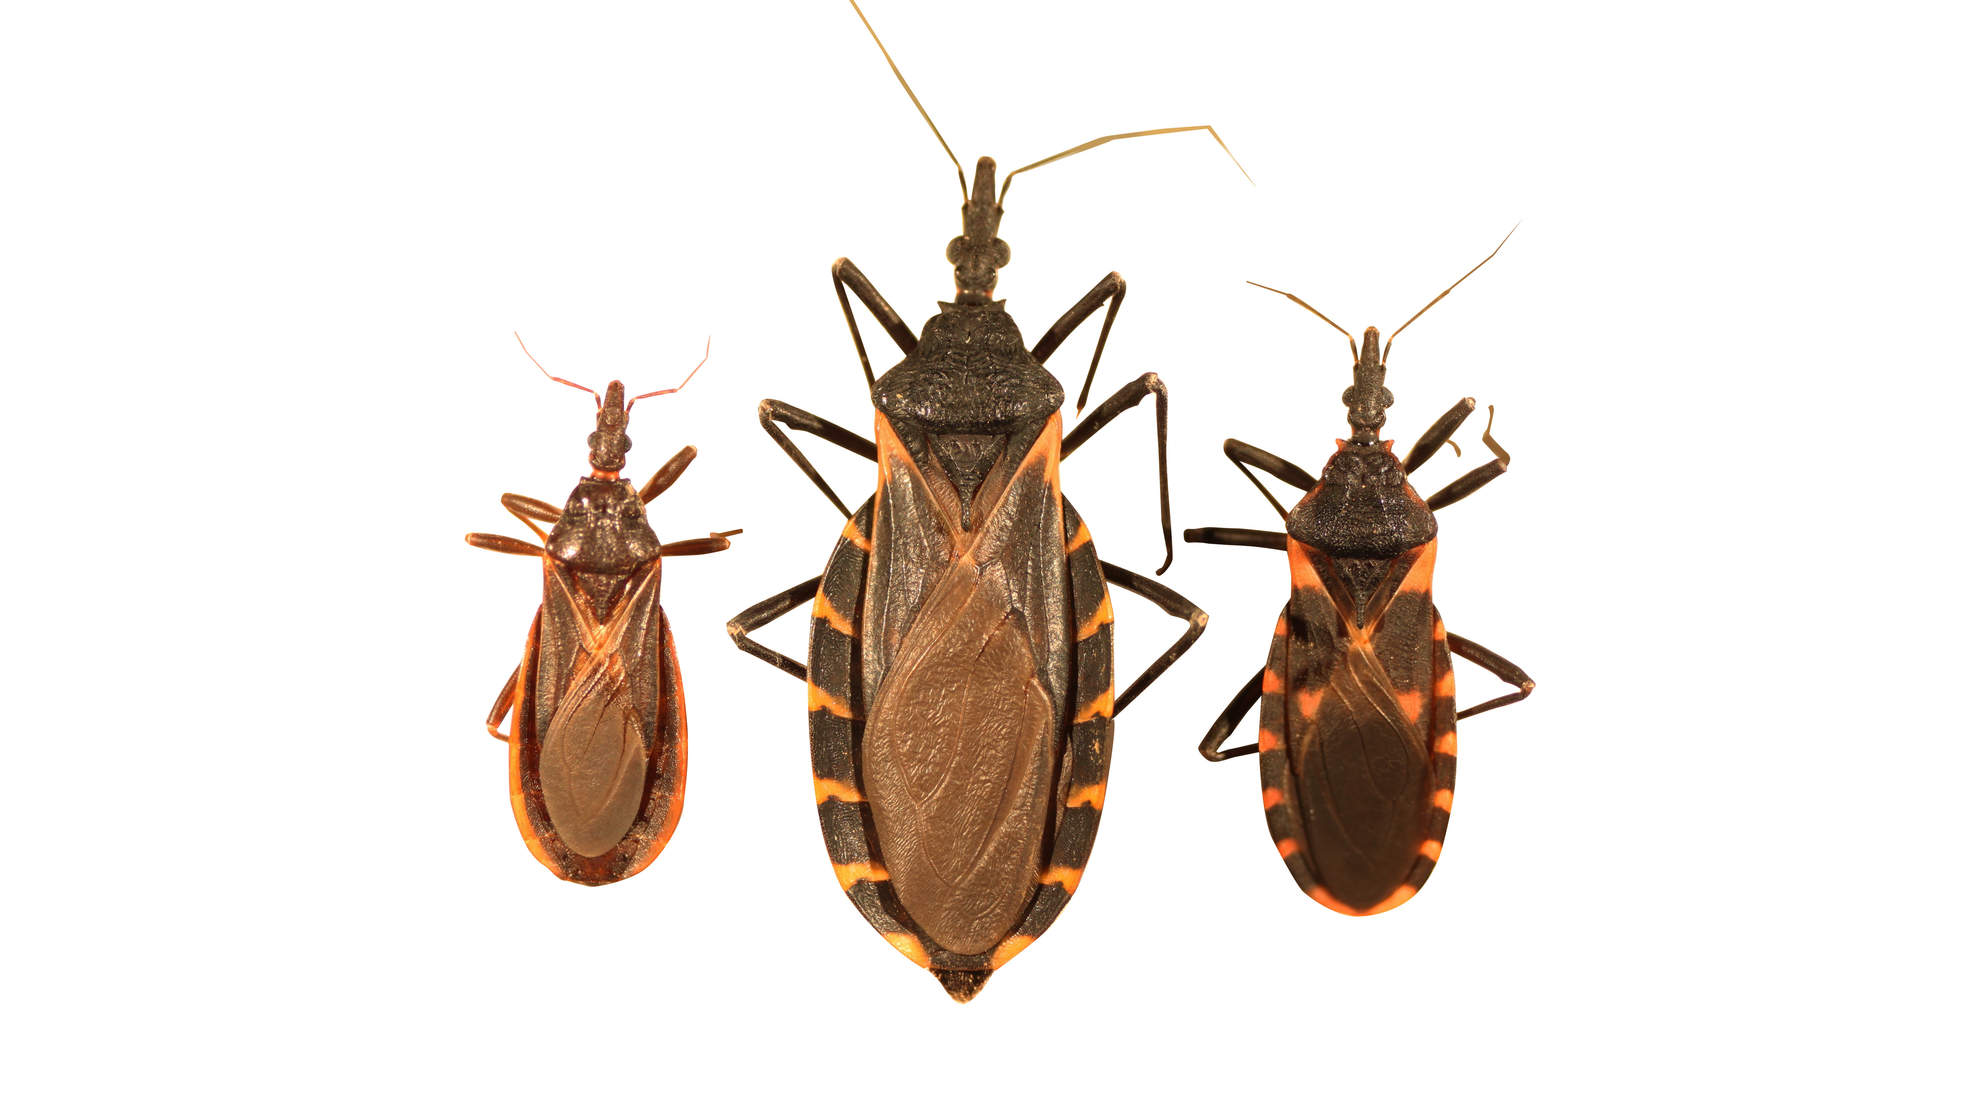 Heart Doctors Are Warning About Chagas Disease, a Fatal Infection Caused by the 'Kissing Bug'